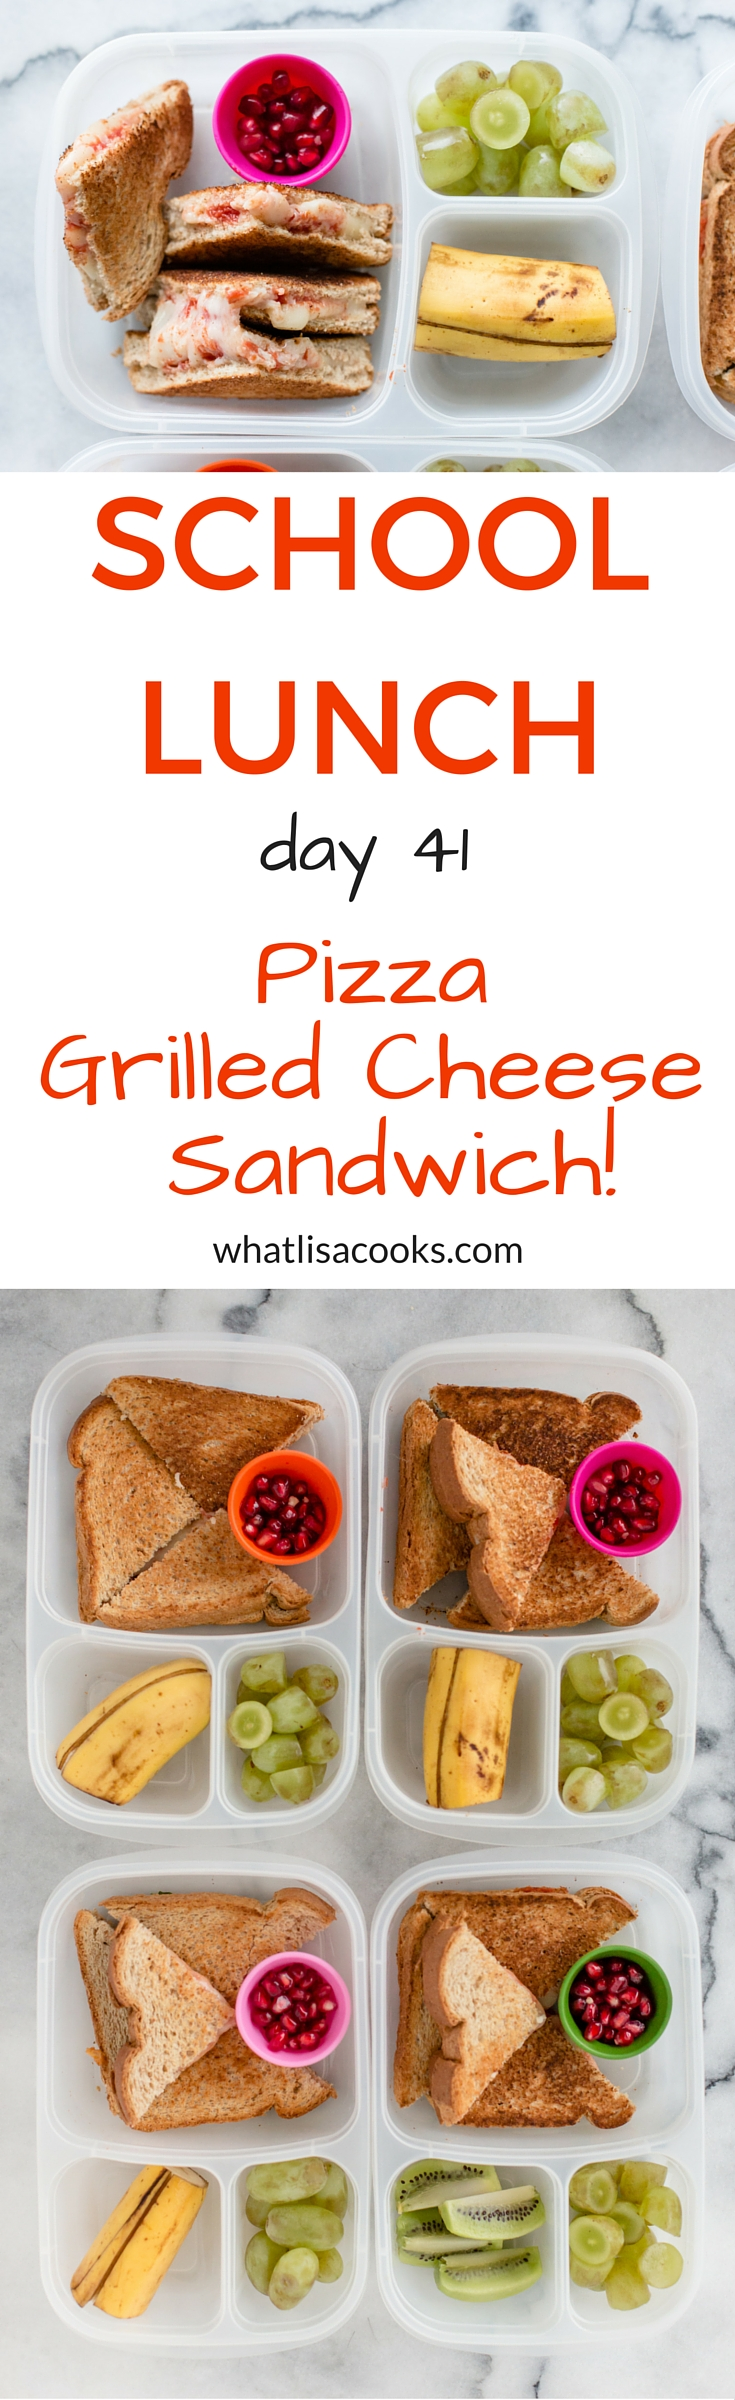 The kids will love this one - a pizza grilled cheese sandwich, packed for school lunch!  from WhatLisaCooks.com